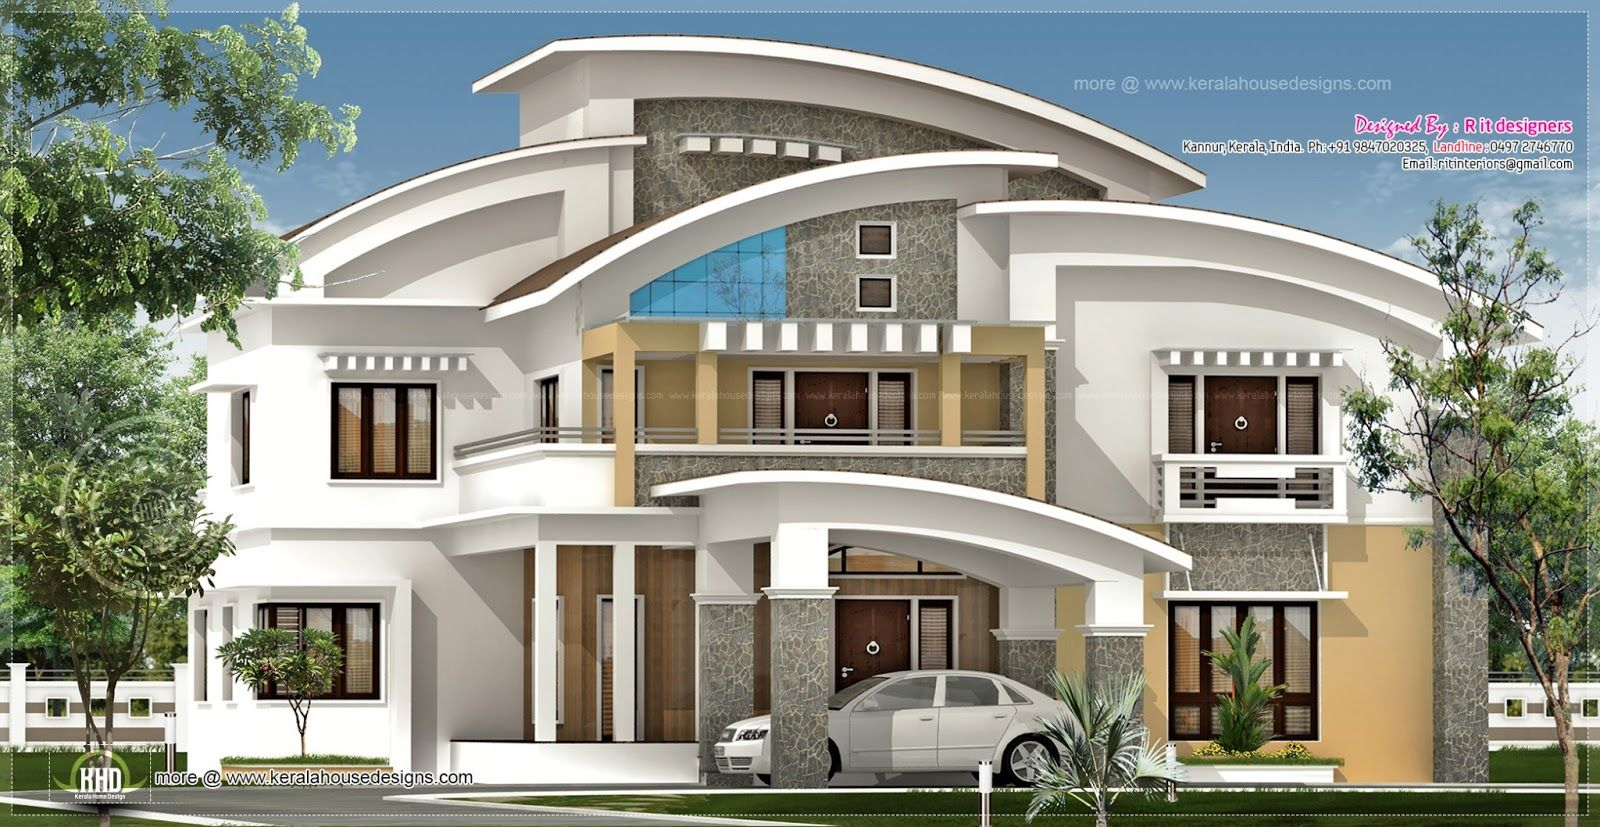 Charmant Luxury Home Exterior Designs 3750 Square Feet Luxury Villa .